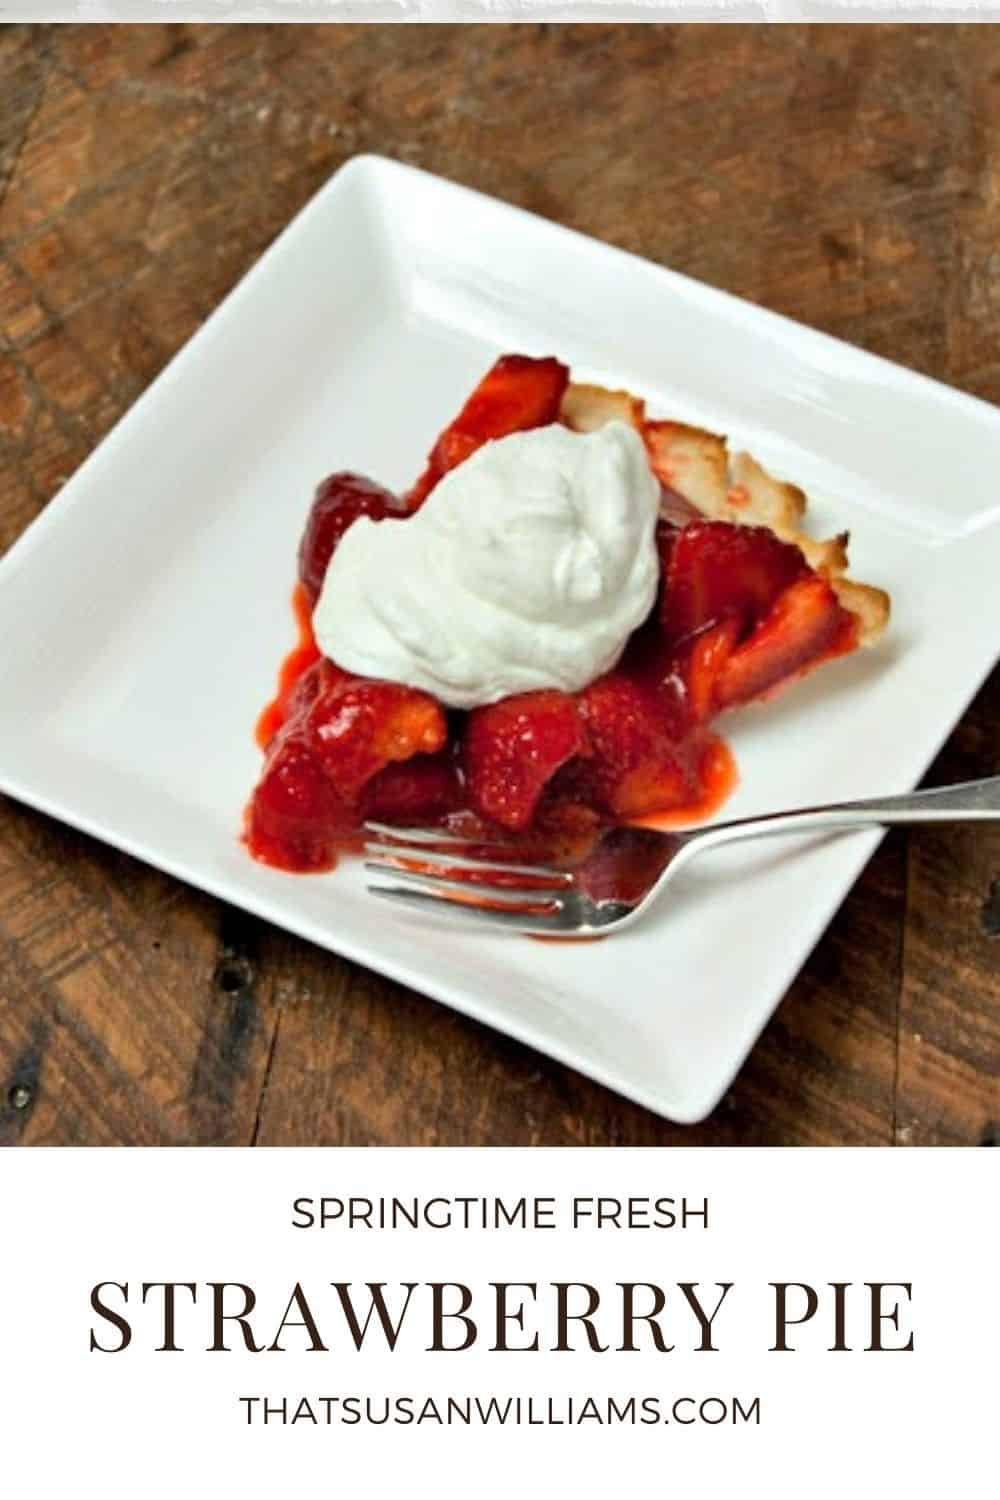 Springtime Fresh Strawberry Pie